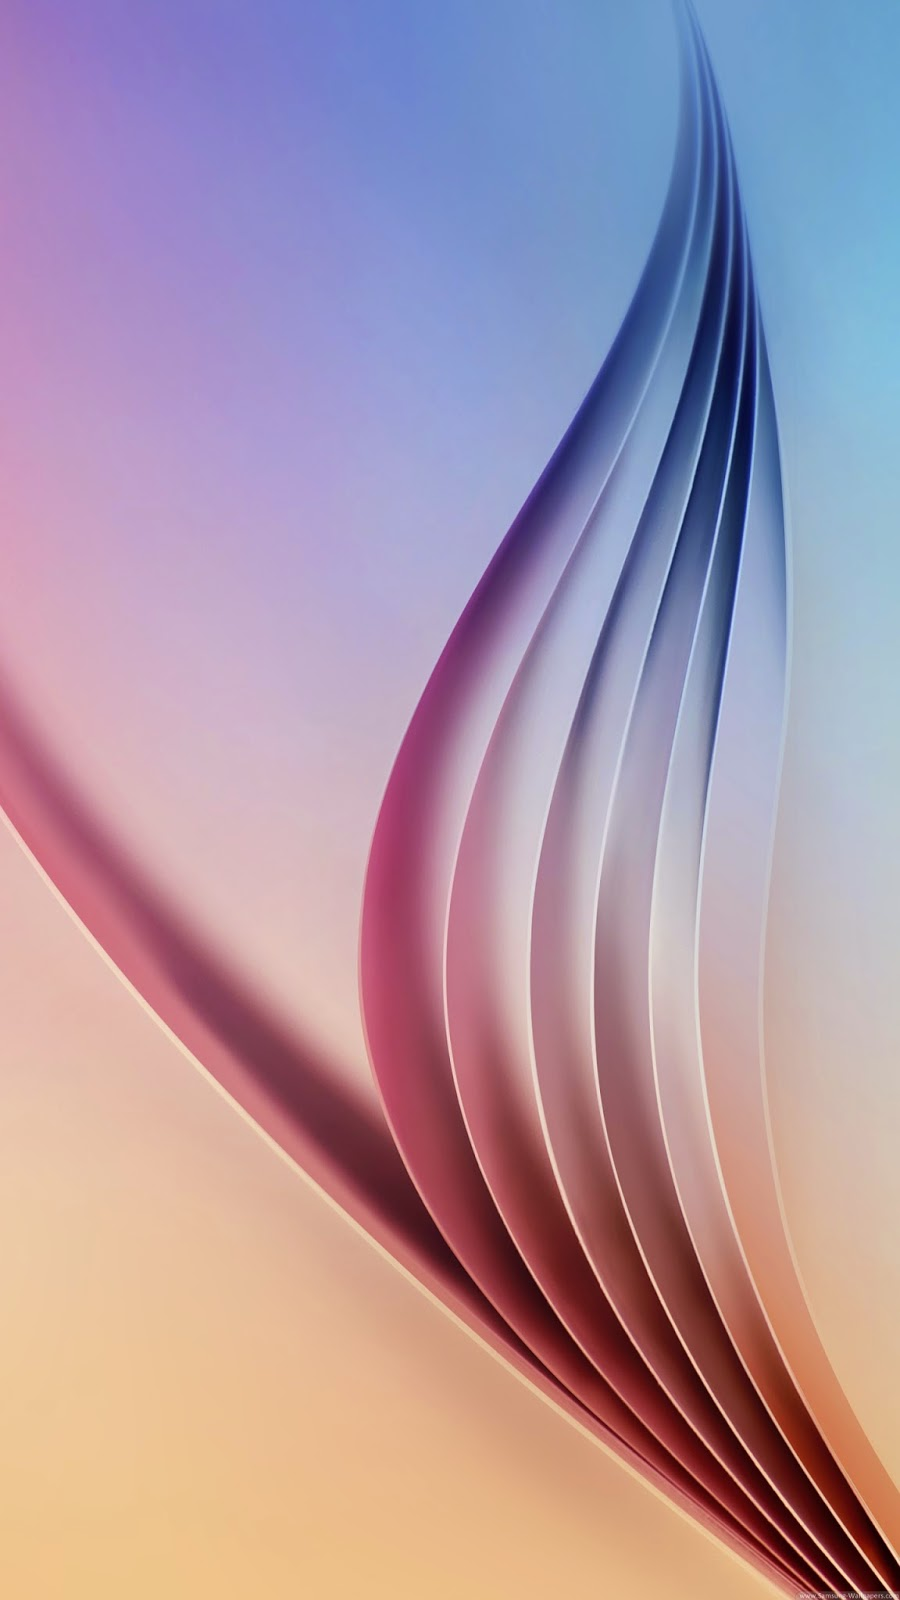 Samsung Galaxy S6 HD Wallpapers